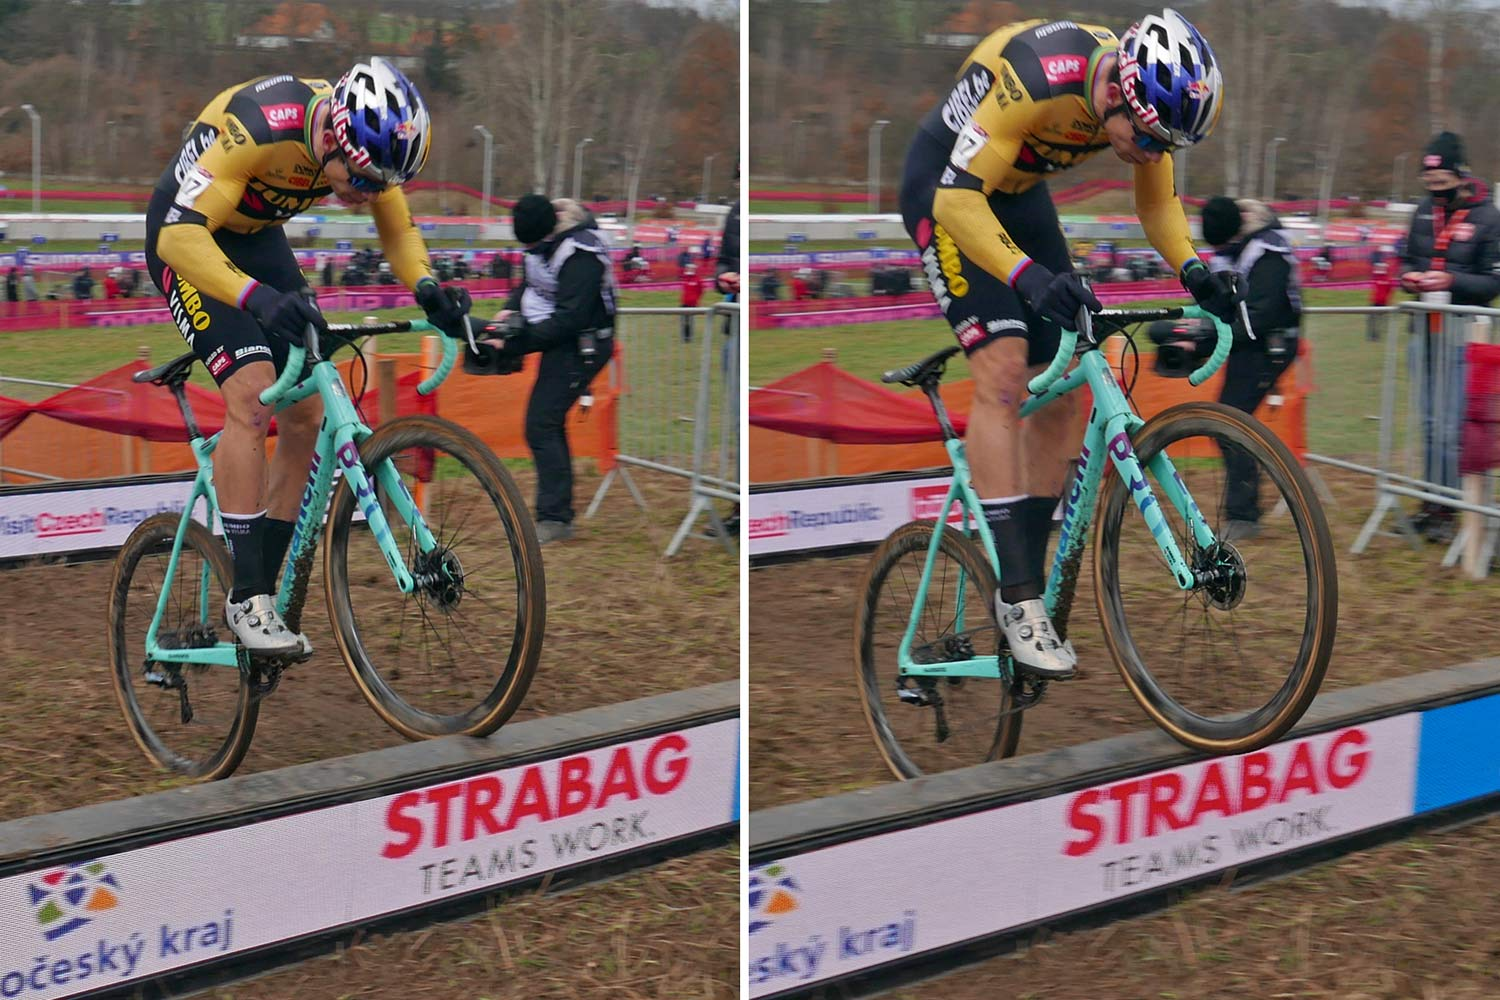 CX Pro Bike Check: Bianchi Zolder Pro carbon cyclocross bike, Wout van Aert at UCI Cyclo-Cross World Cup Tabor,bunny hopping barriers